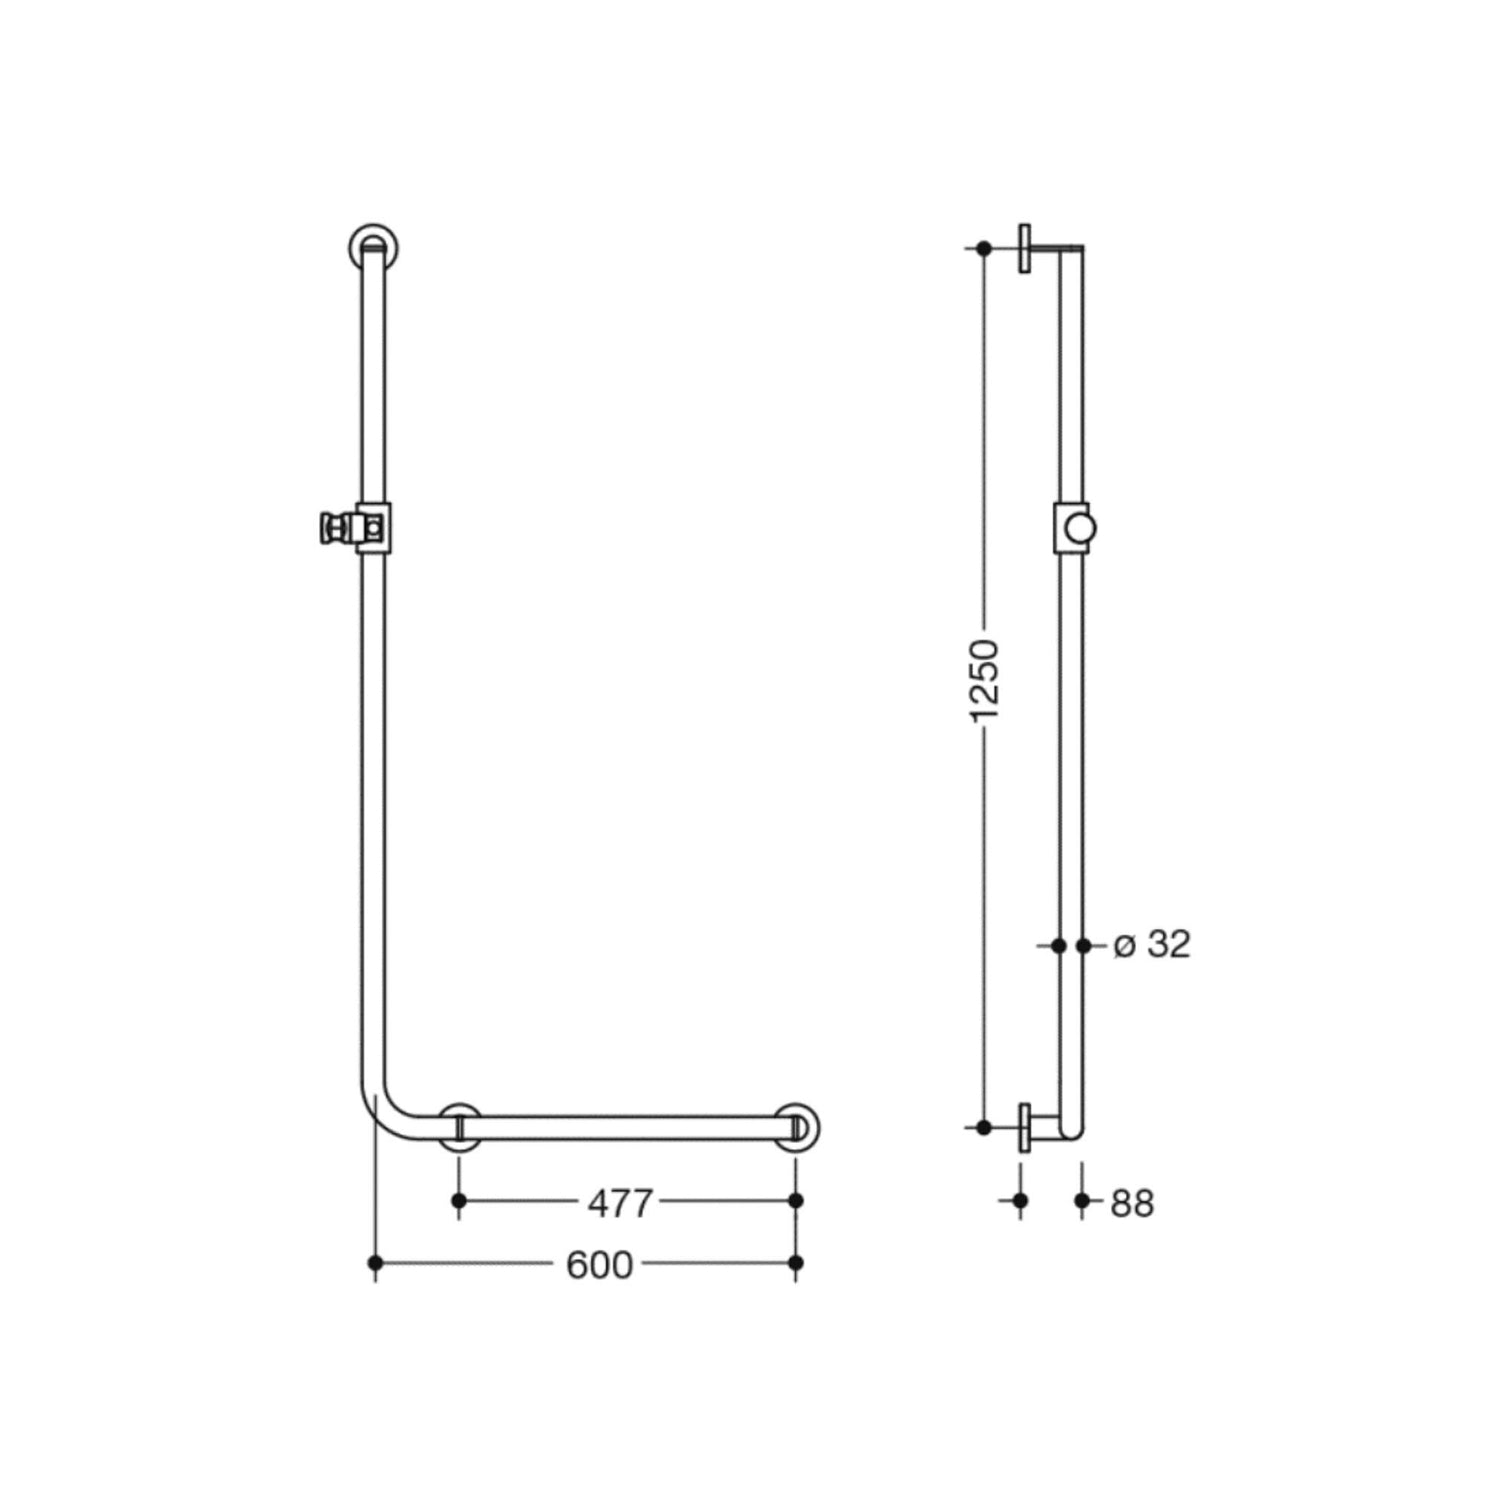 1250x600mm Right Handed Freestyle Supportive L Shaped Shower Rail with a matt black finish dimensional drawing